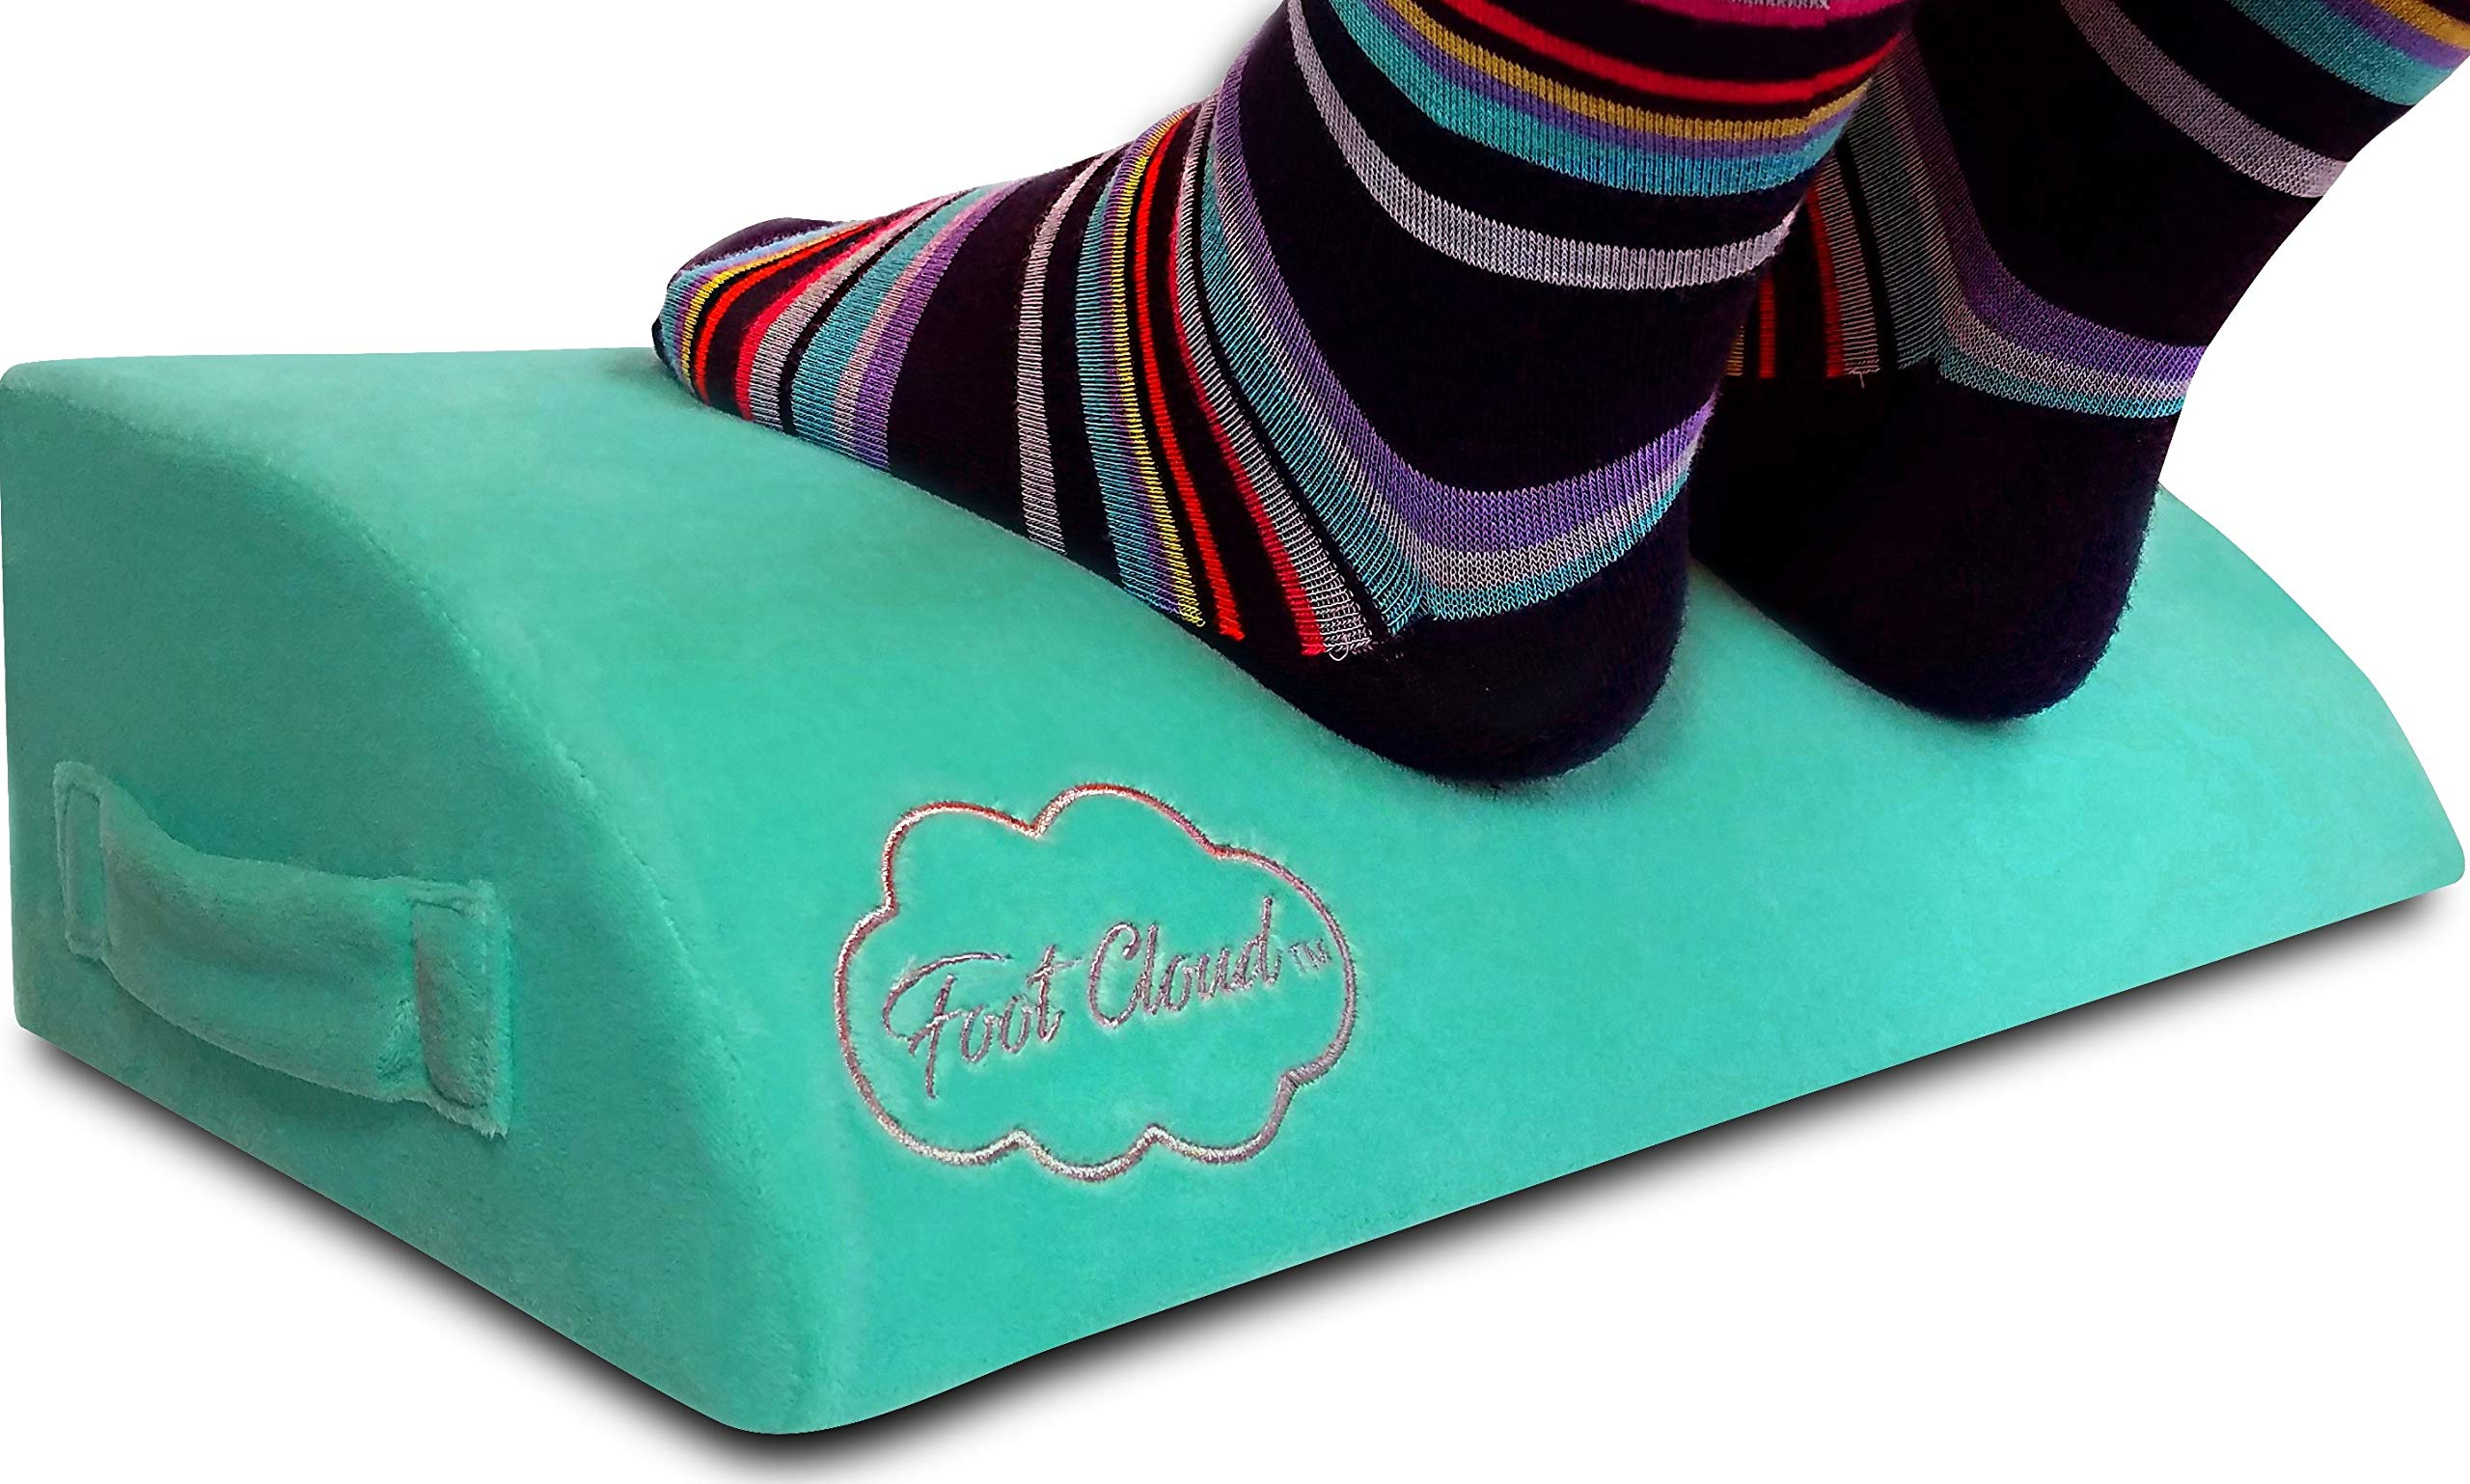 Foot Cloud Ergonomic Foam Foot Rest. Amazon's only Ergonomic Foam Desk Foot Rest, Office Foot Rest, Under Desk Foot Rest - Like Your Feet are Floating on a Cloud.